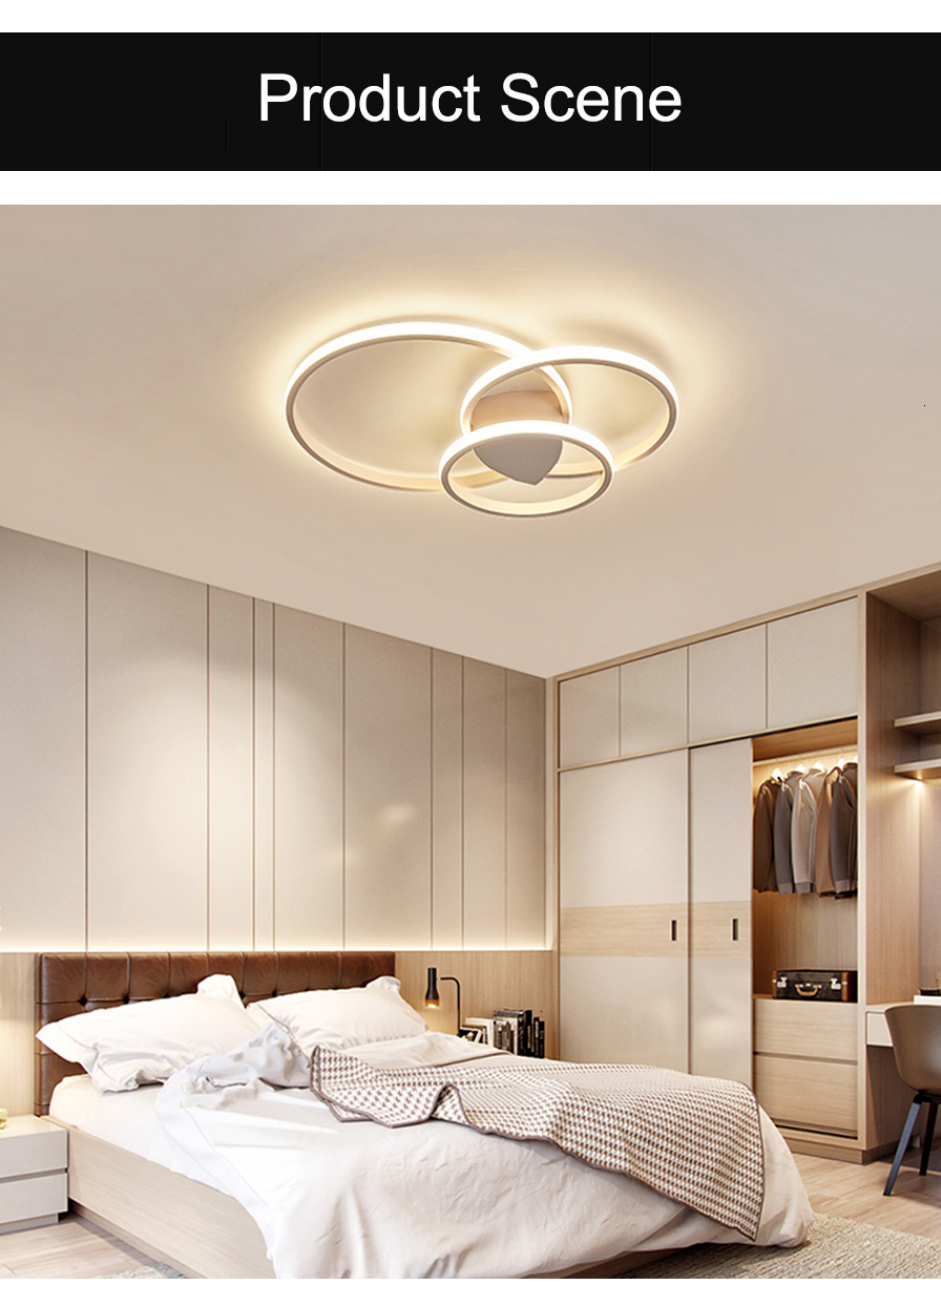 H6143f4601f9d4ef19bdc6c8f03d274bcT Led Ceiling lamp For Living Room Bedroom Study Room Home Deco AC85-265V Modern White/Coffee surface mounted Ceiling Lamp